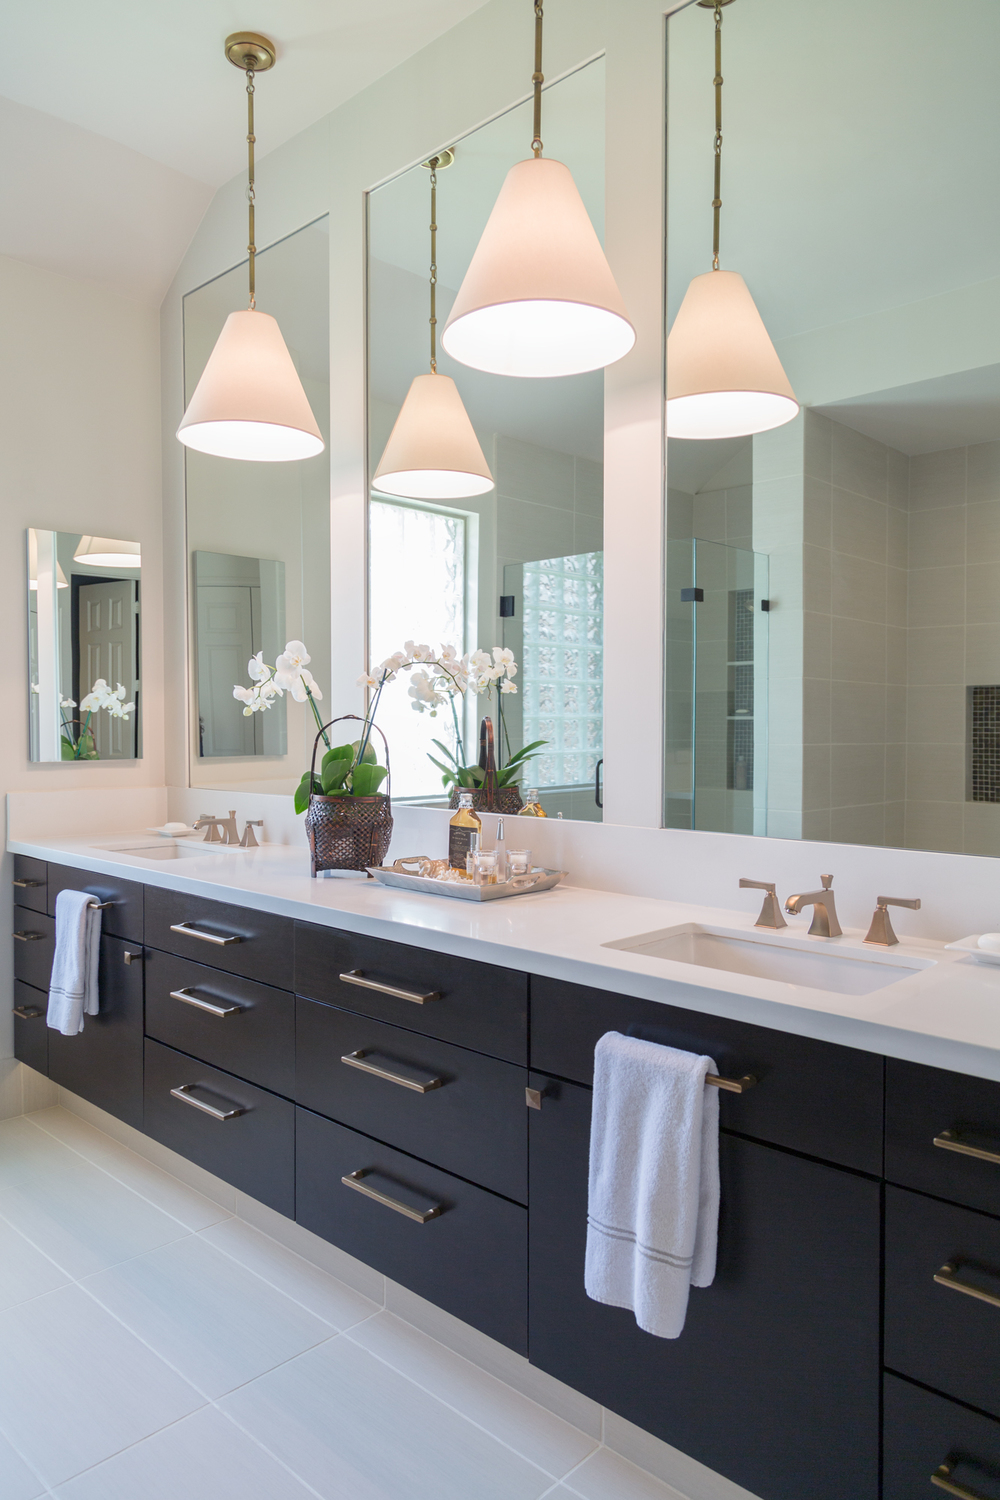 BEFORE & AFTER: A Master Bathroom Remodel Surprises